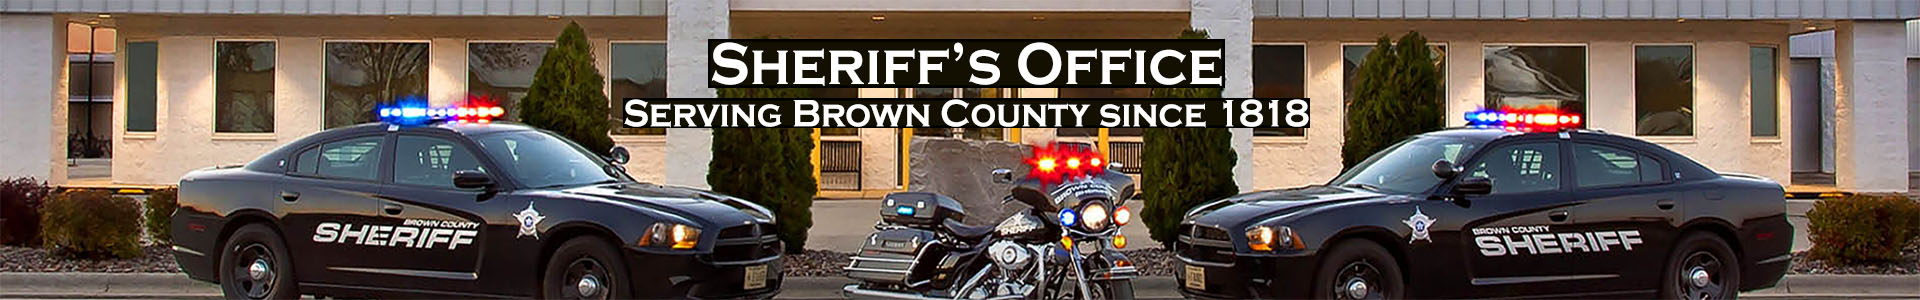 Sheriff's Office Main Banner